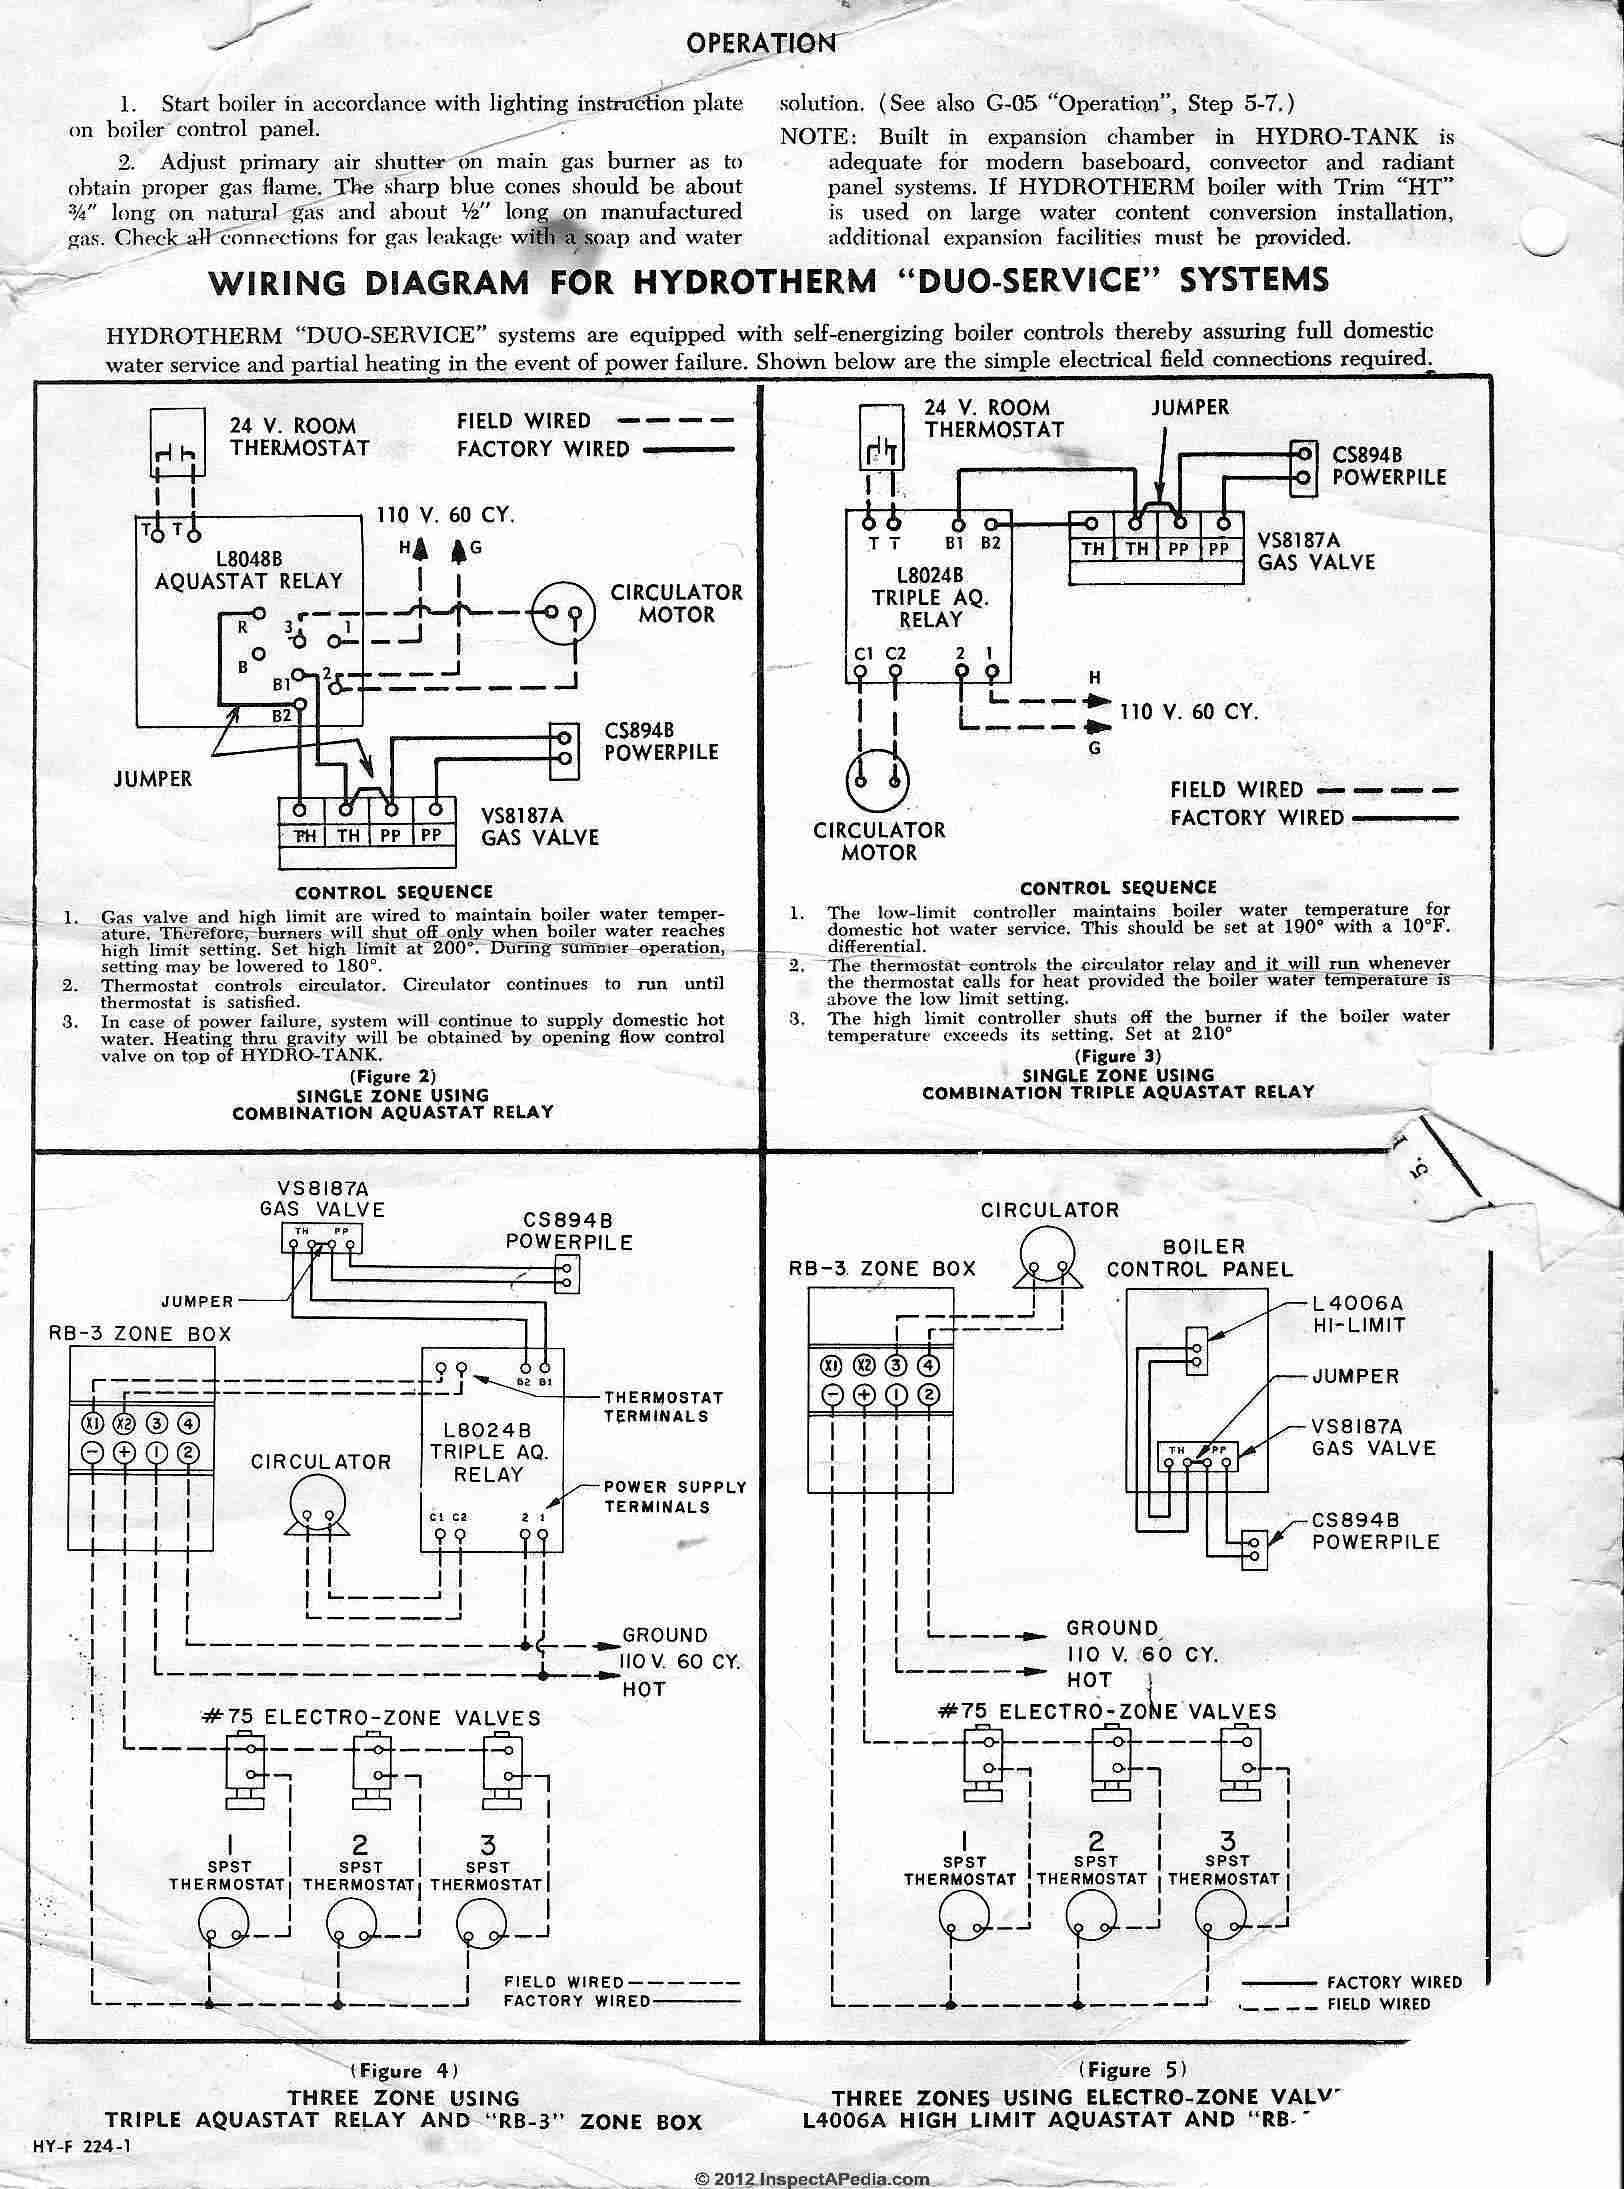 L8024B_Aquastat_0422_DJFcs honeywell l7224 wiring diagram honeywell l7224u aquastat wiring honeywell pressure switch wiring diagram at gsmx.co